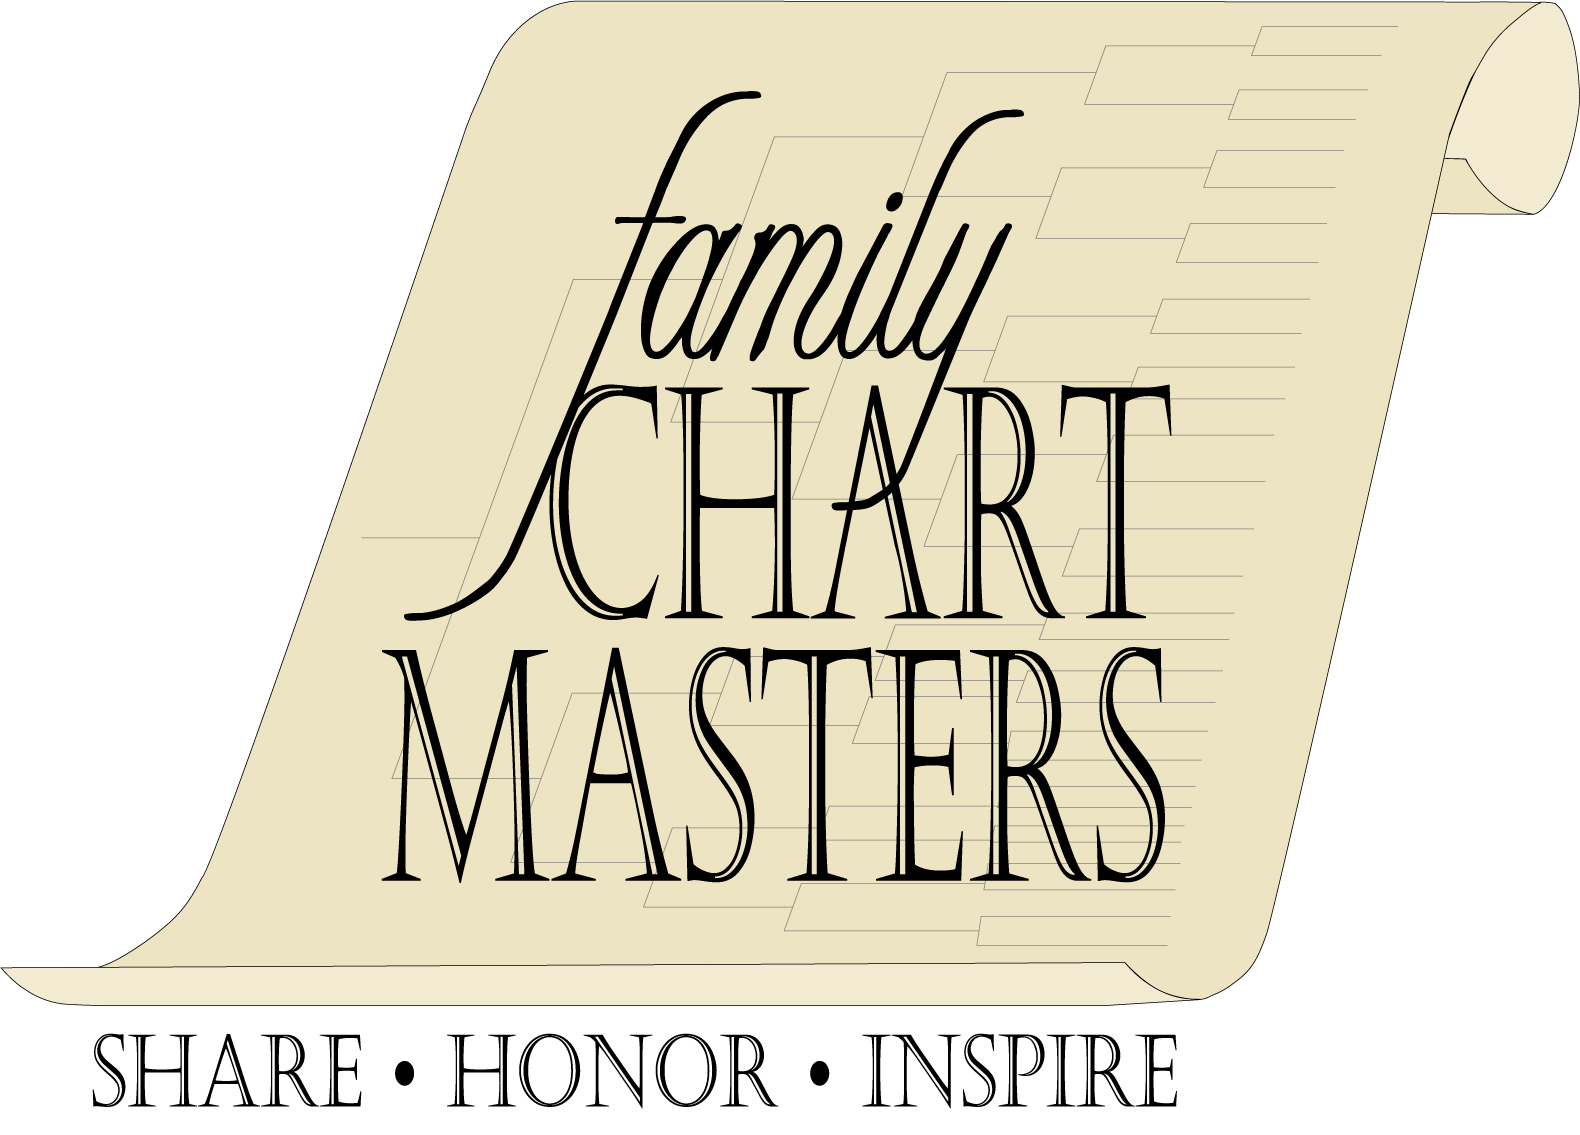 Family Chartmasters Is The Place To Come For Help In Involving Your With Their History We Are An Award Winning Genealogy Chart Printing